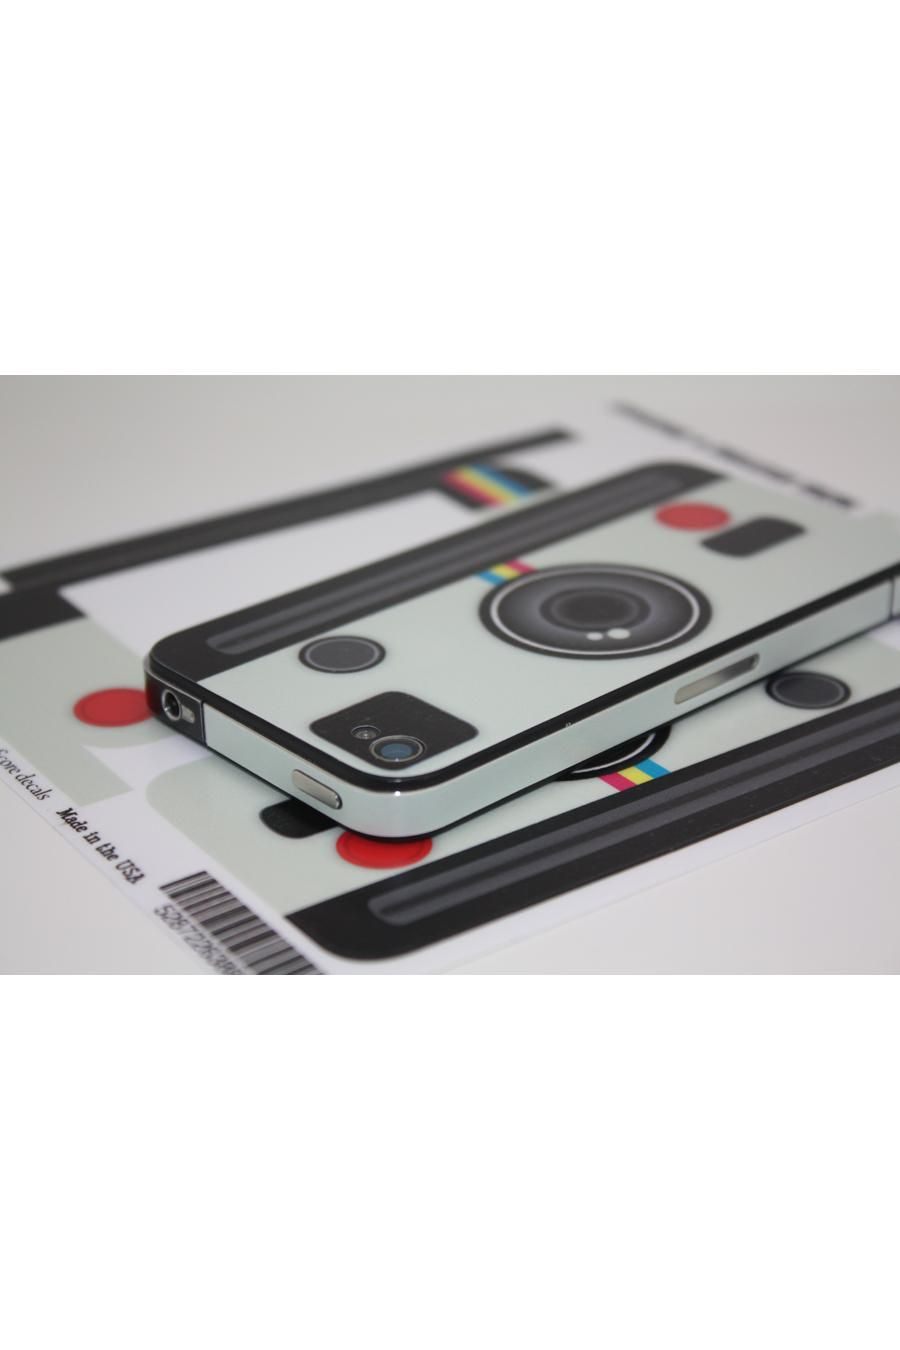 Polaroid Camera iPhone Decal - awesome!